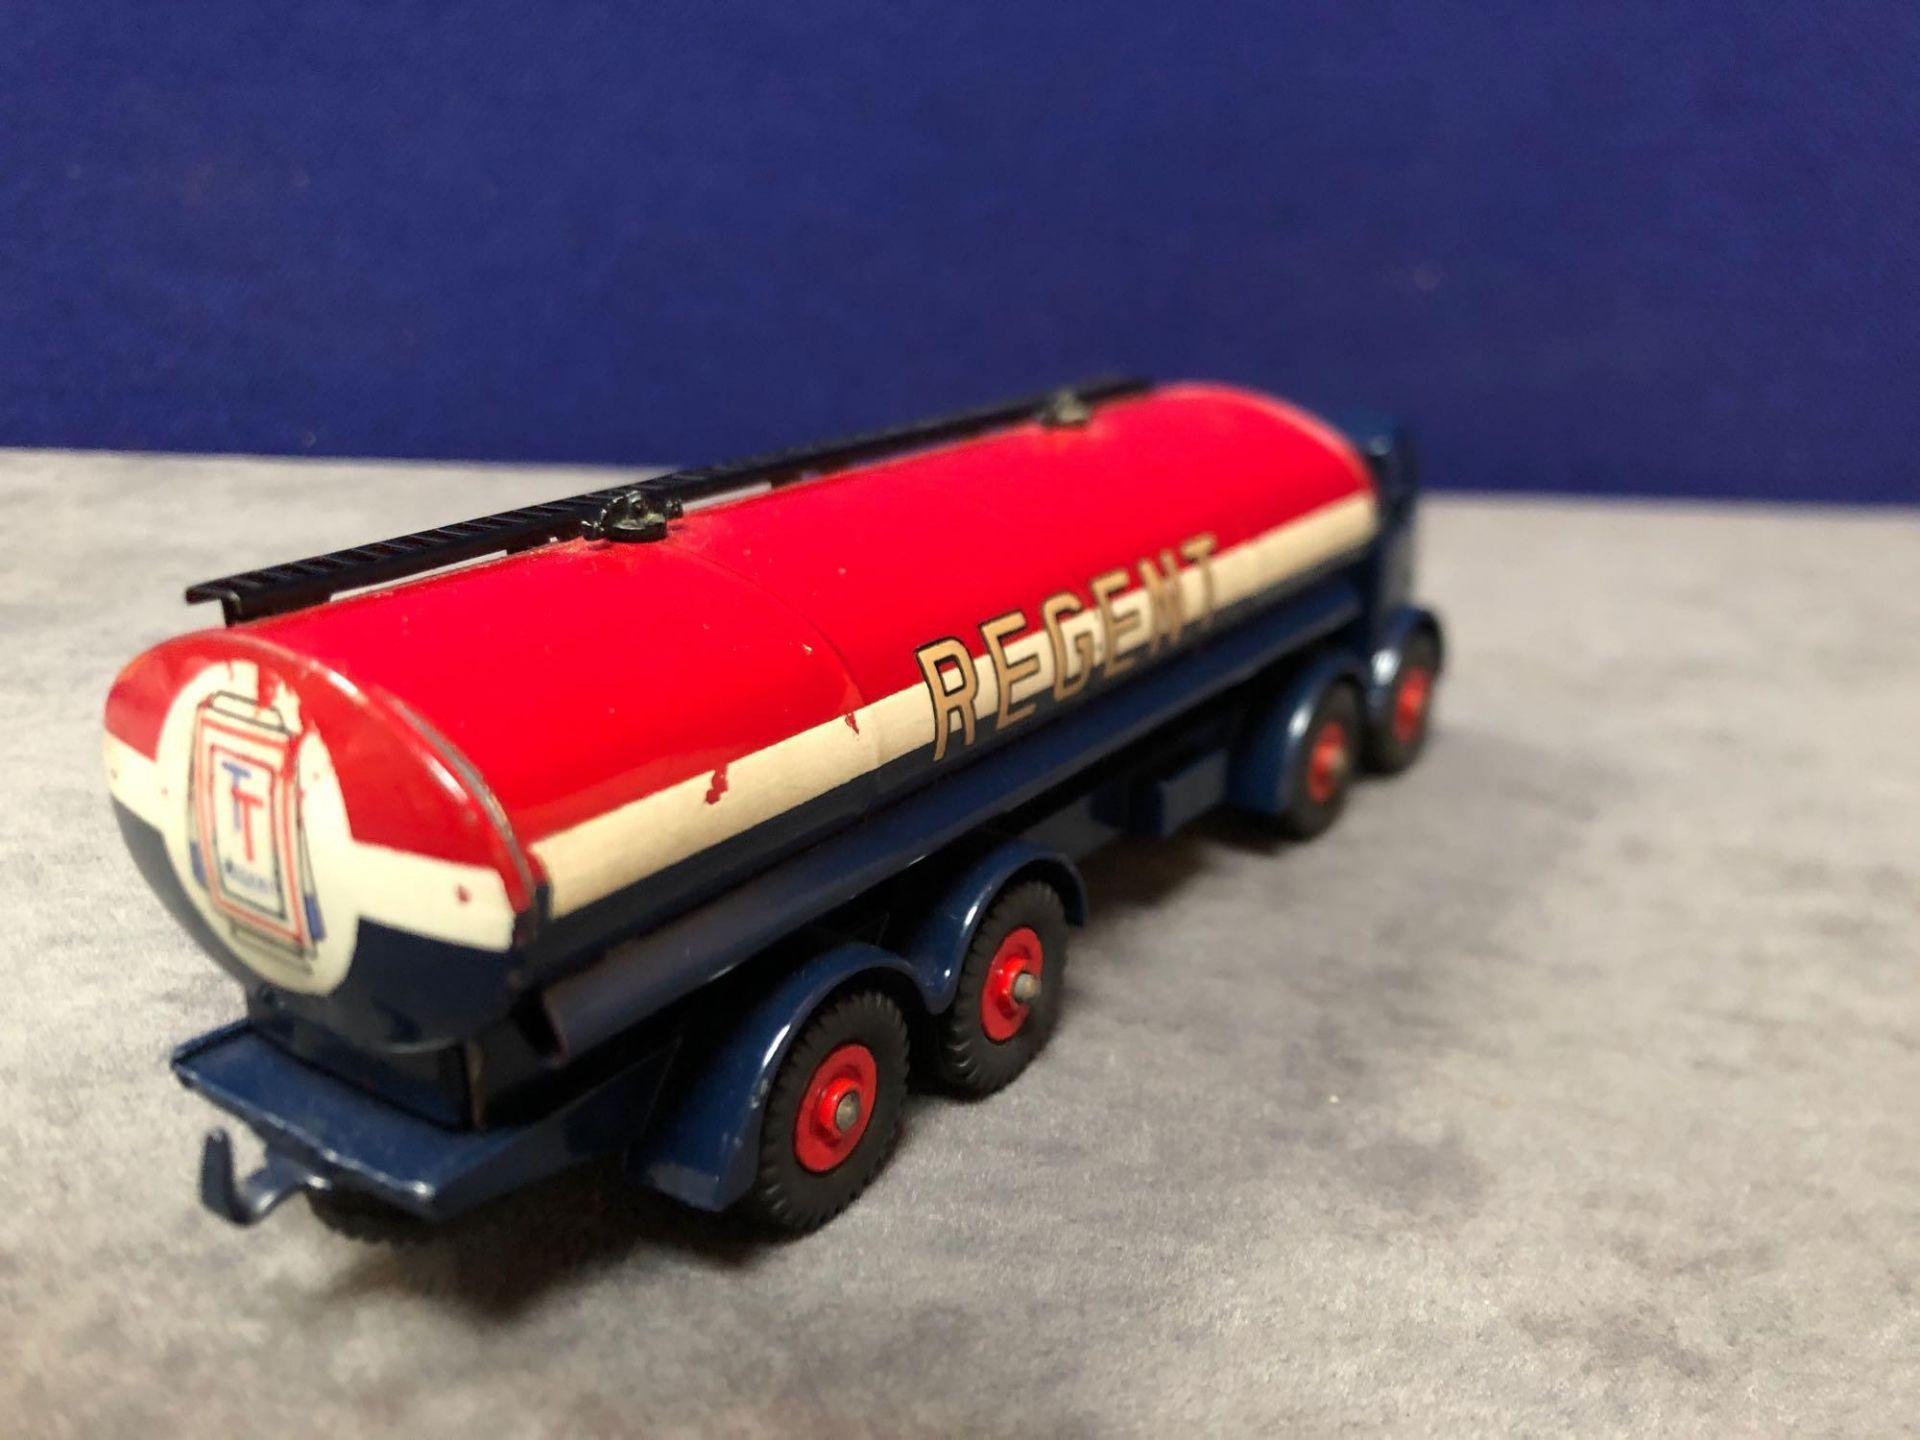 Dinky Super Toys Diecast #942 Foden 14-Ton Tanker Regent In Excellent Condition With Bright Paint In - Image 3 of 4